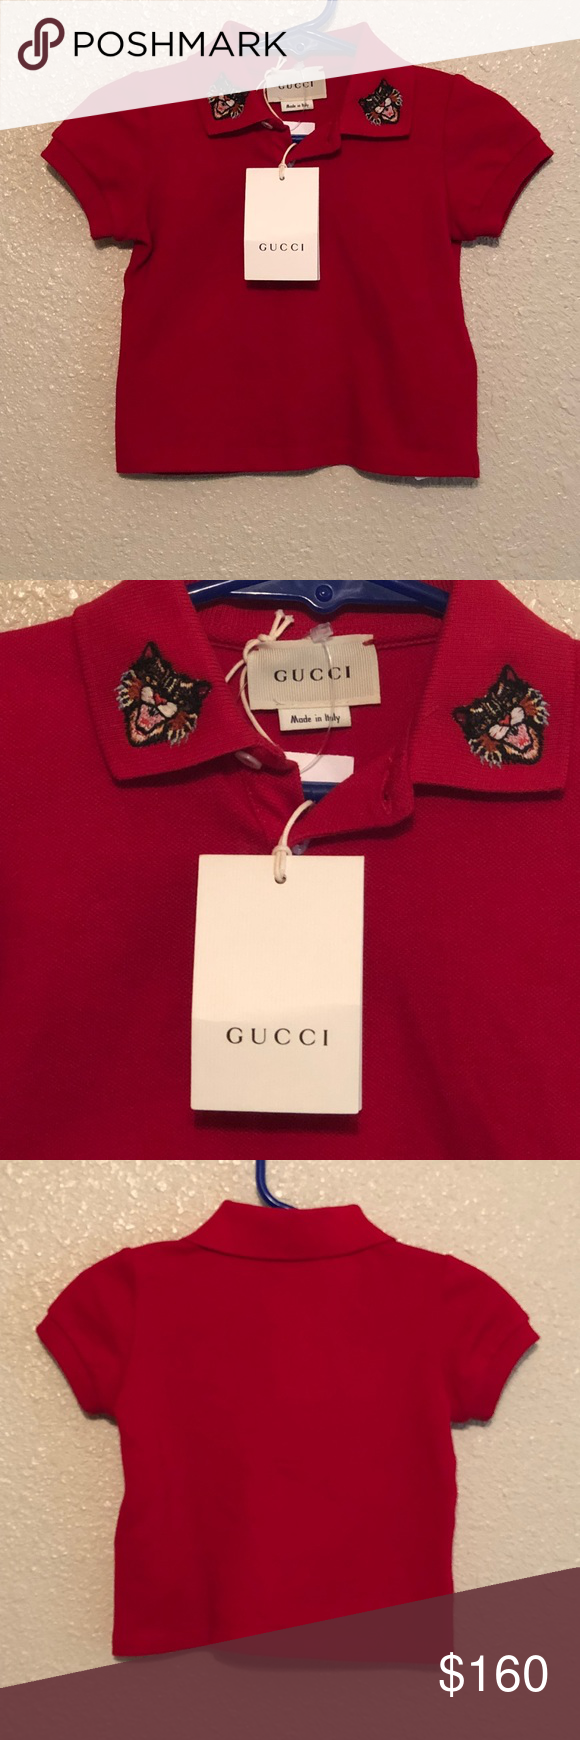 25fb3b1166d Gucci baby polo brand new Purchased from saks this year